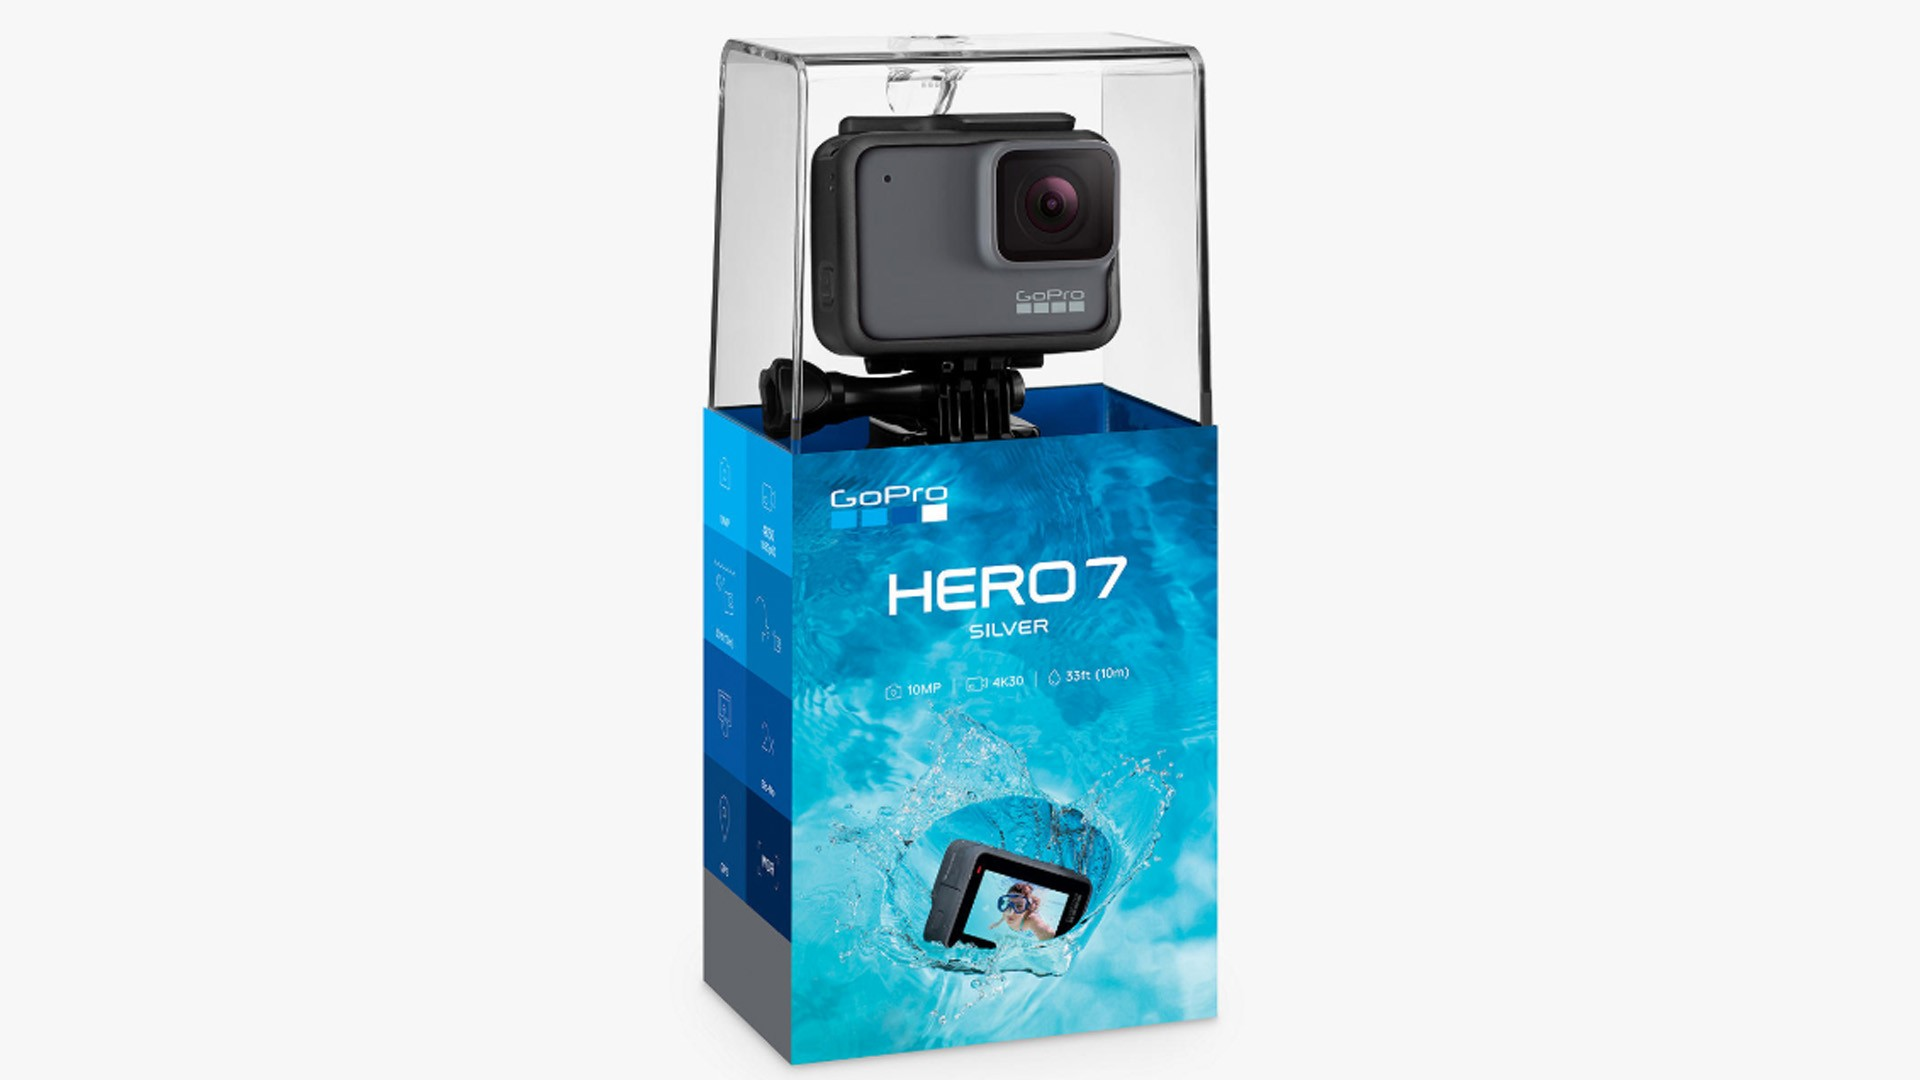 Get one of the latest GoPro cameras and get filming